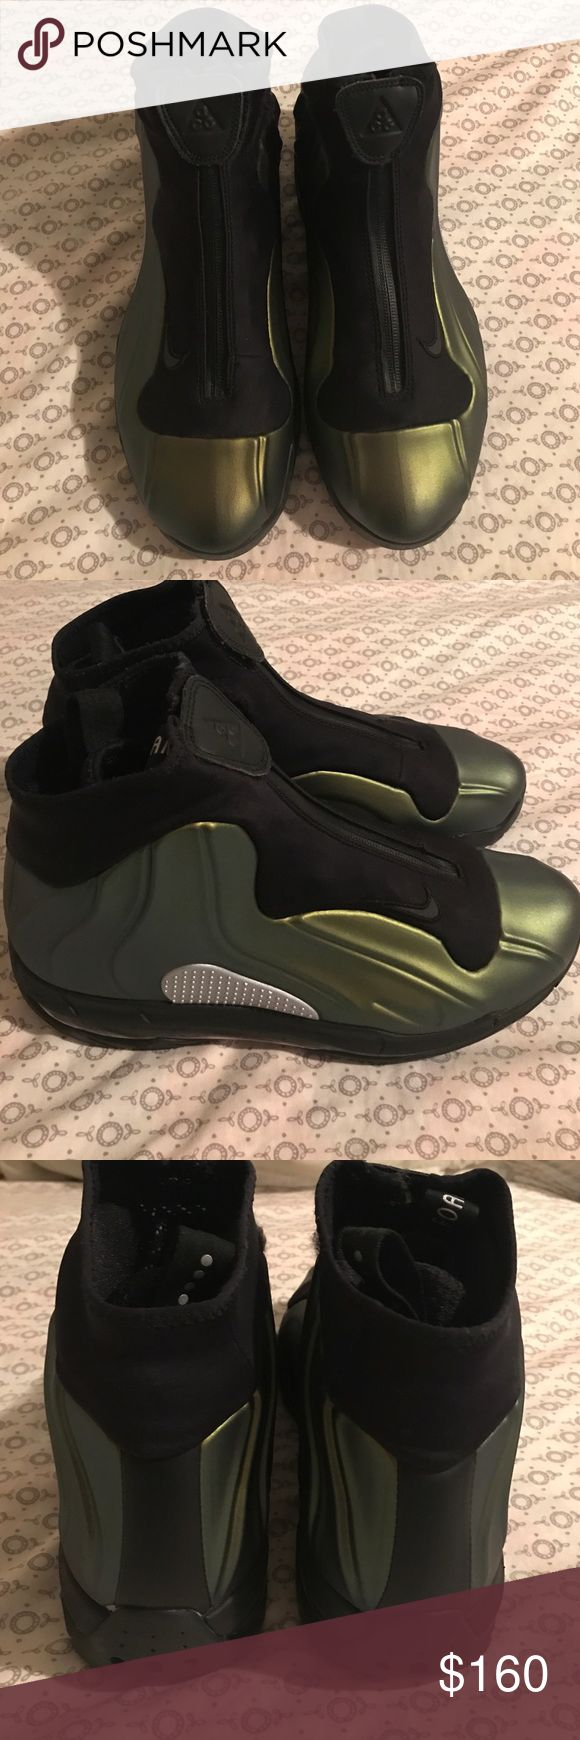 Nike I-95 Max ACG Foamposite Boots Men's Excellent condition Men's size 9 Nike ACG Foamposite Boots. Color is Iridescent Gold and Black. Nike Shoes Boots